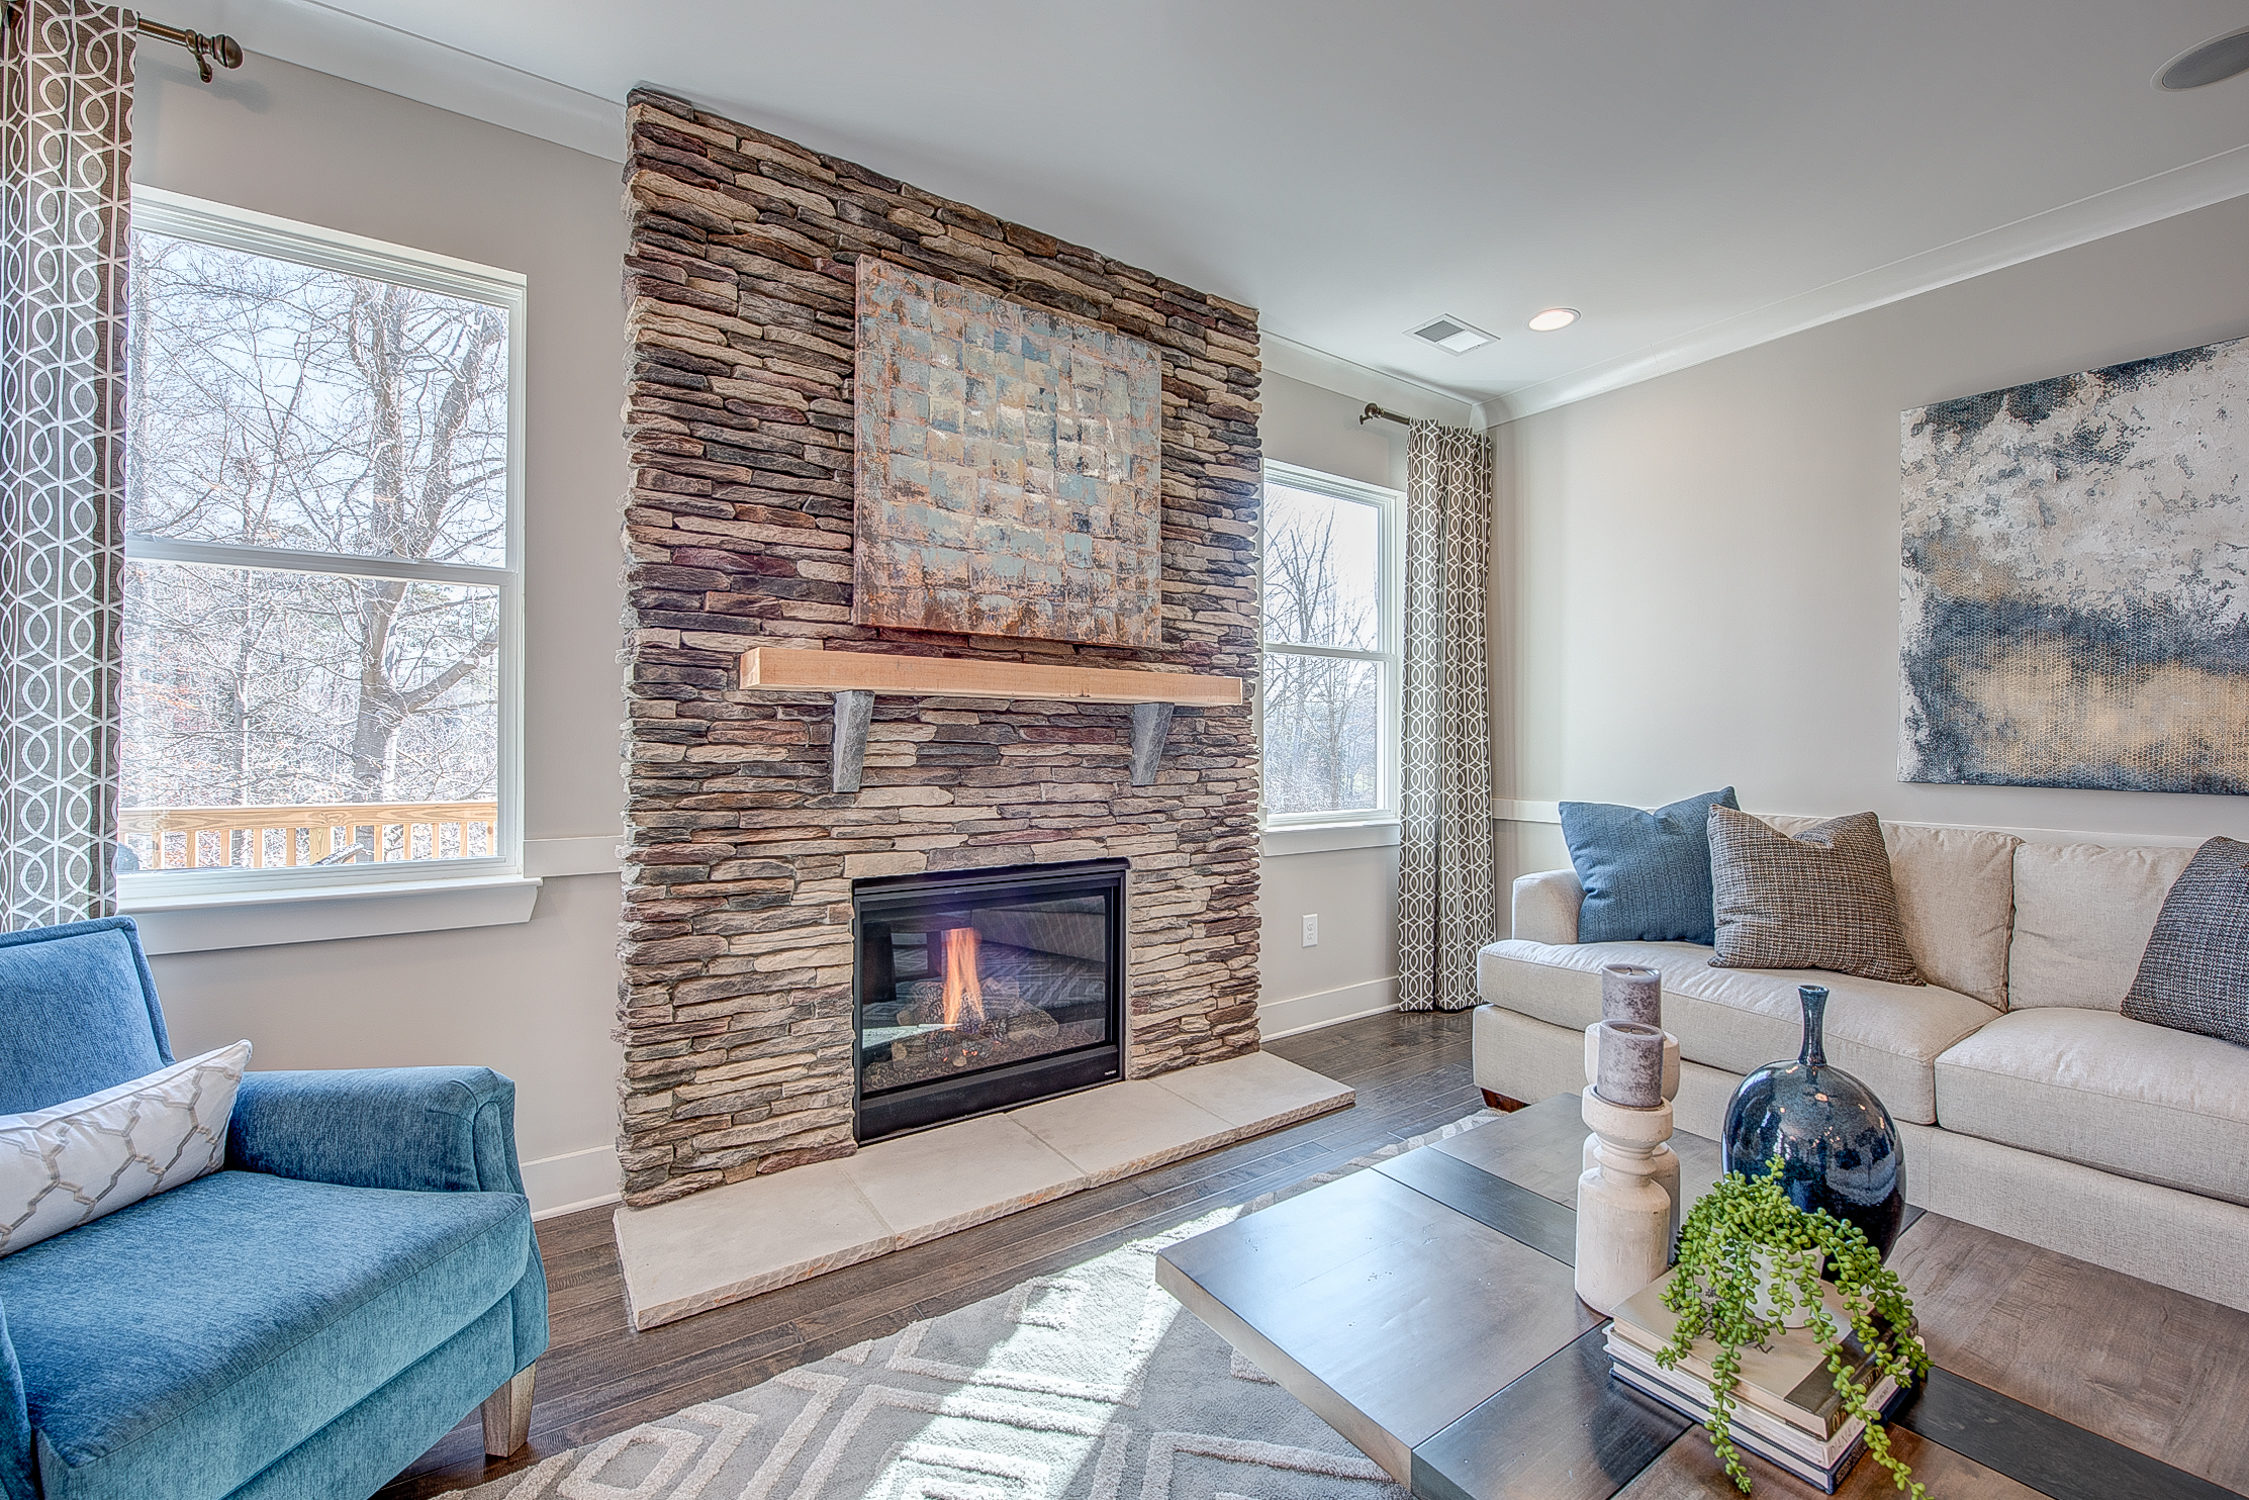 104-bushney-loop-mooresville-print-014-4-fireplace-detail-2249x1500-300dpi_33628713281_o.jpg